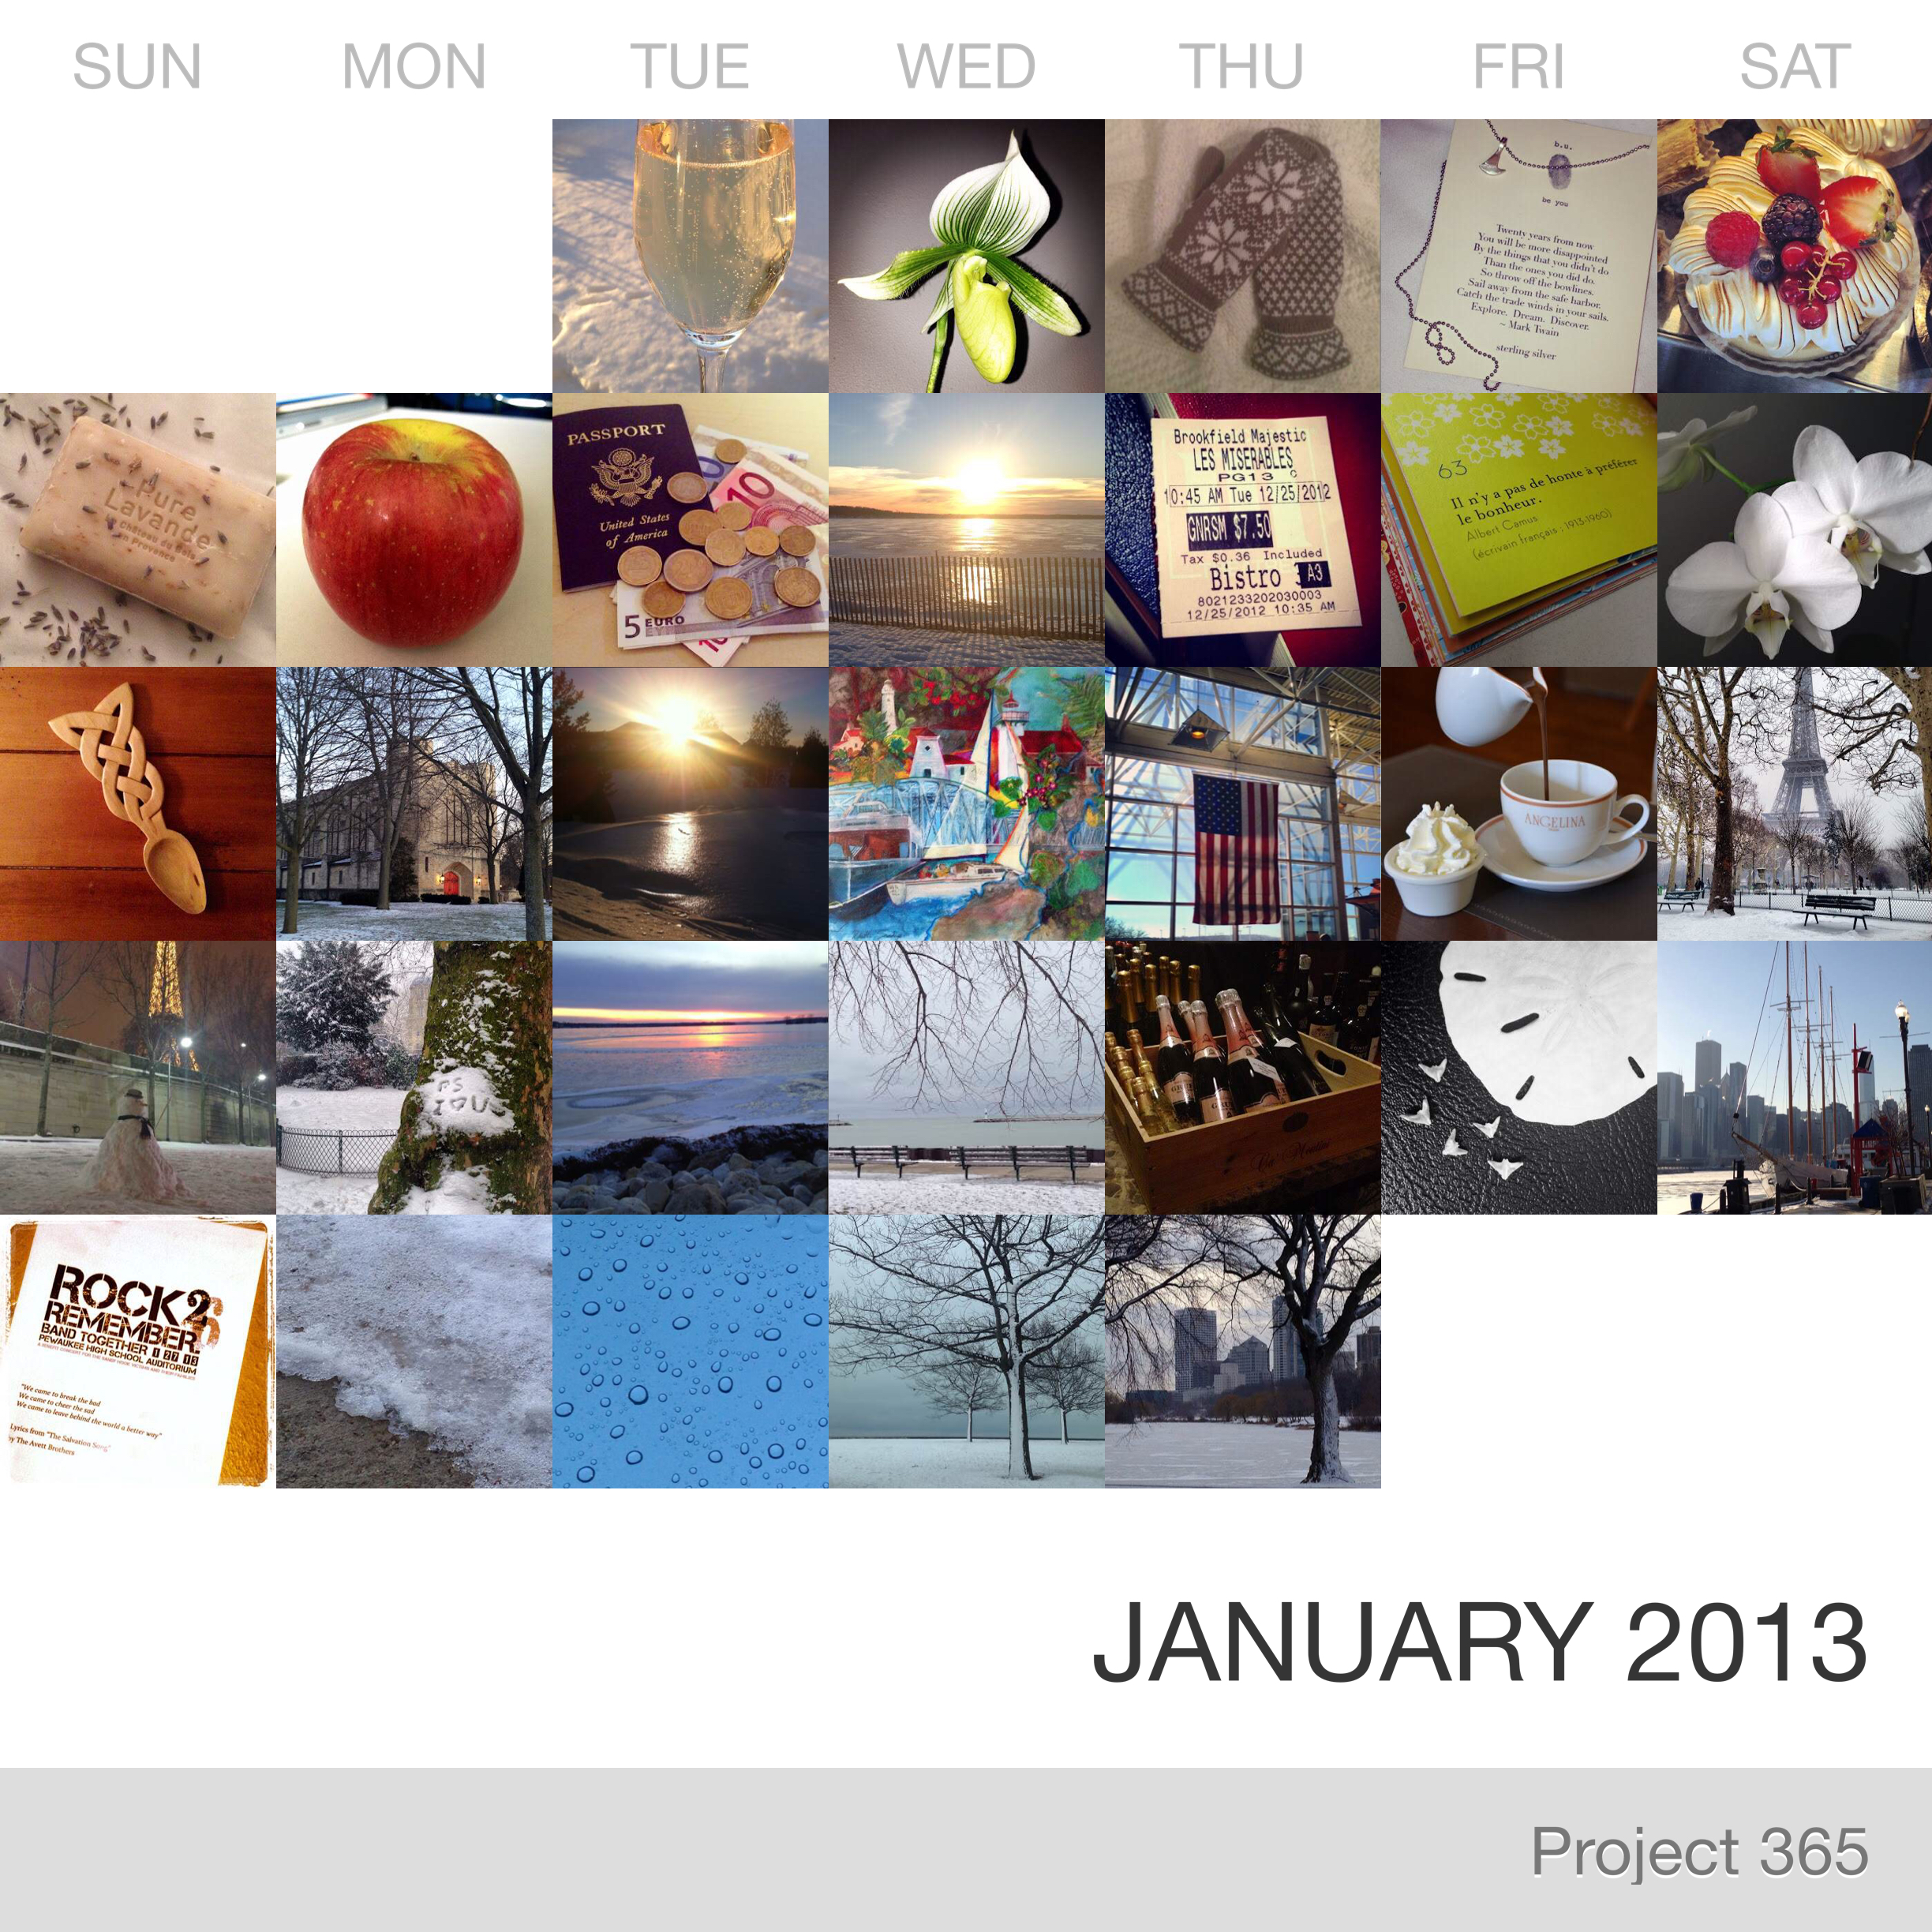 Project 365 _January-2013_Collage.jpg